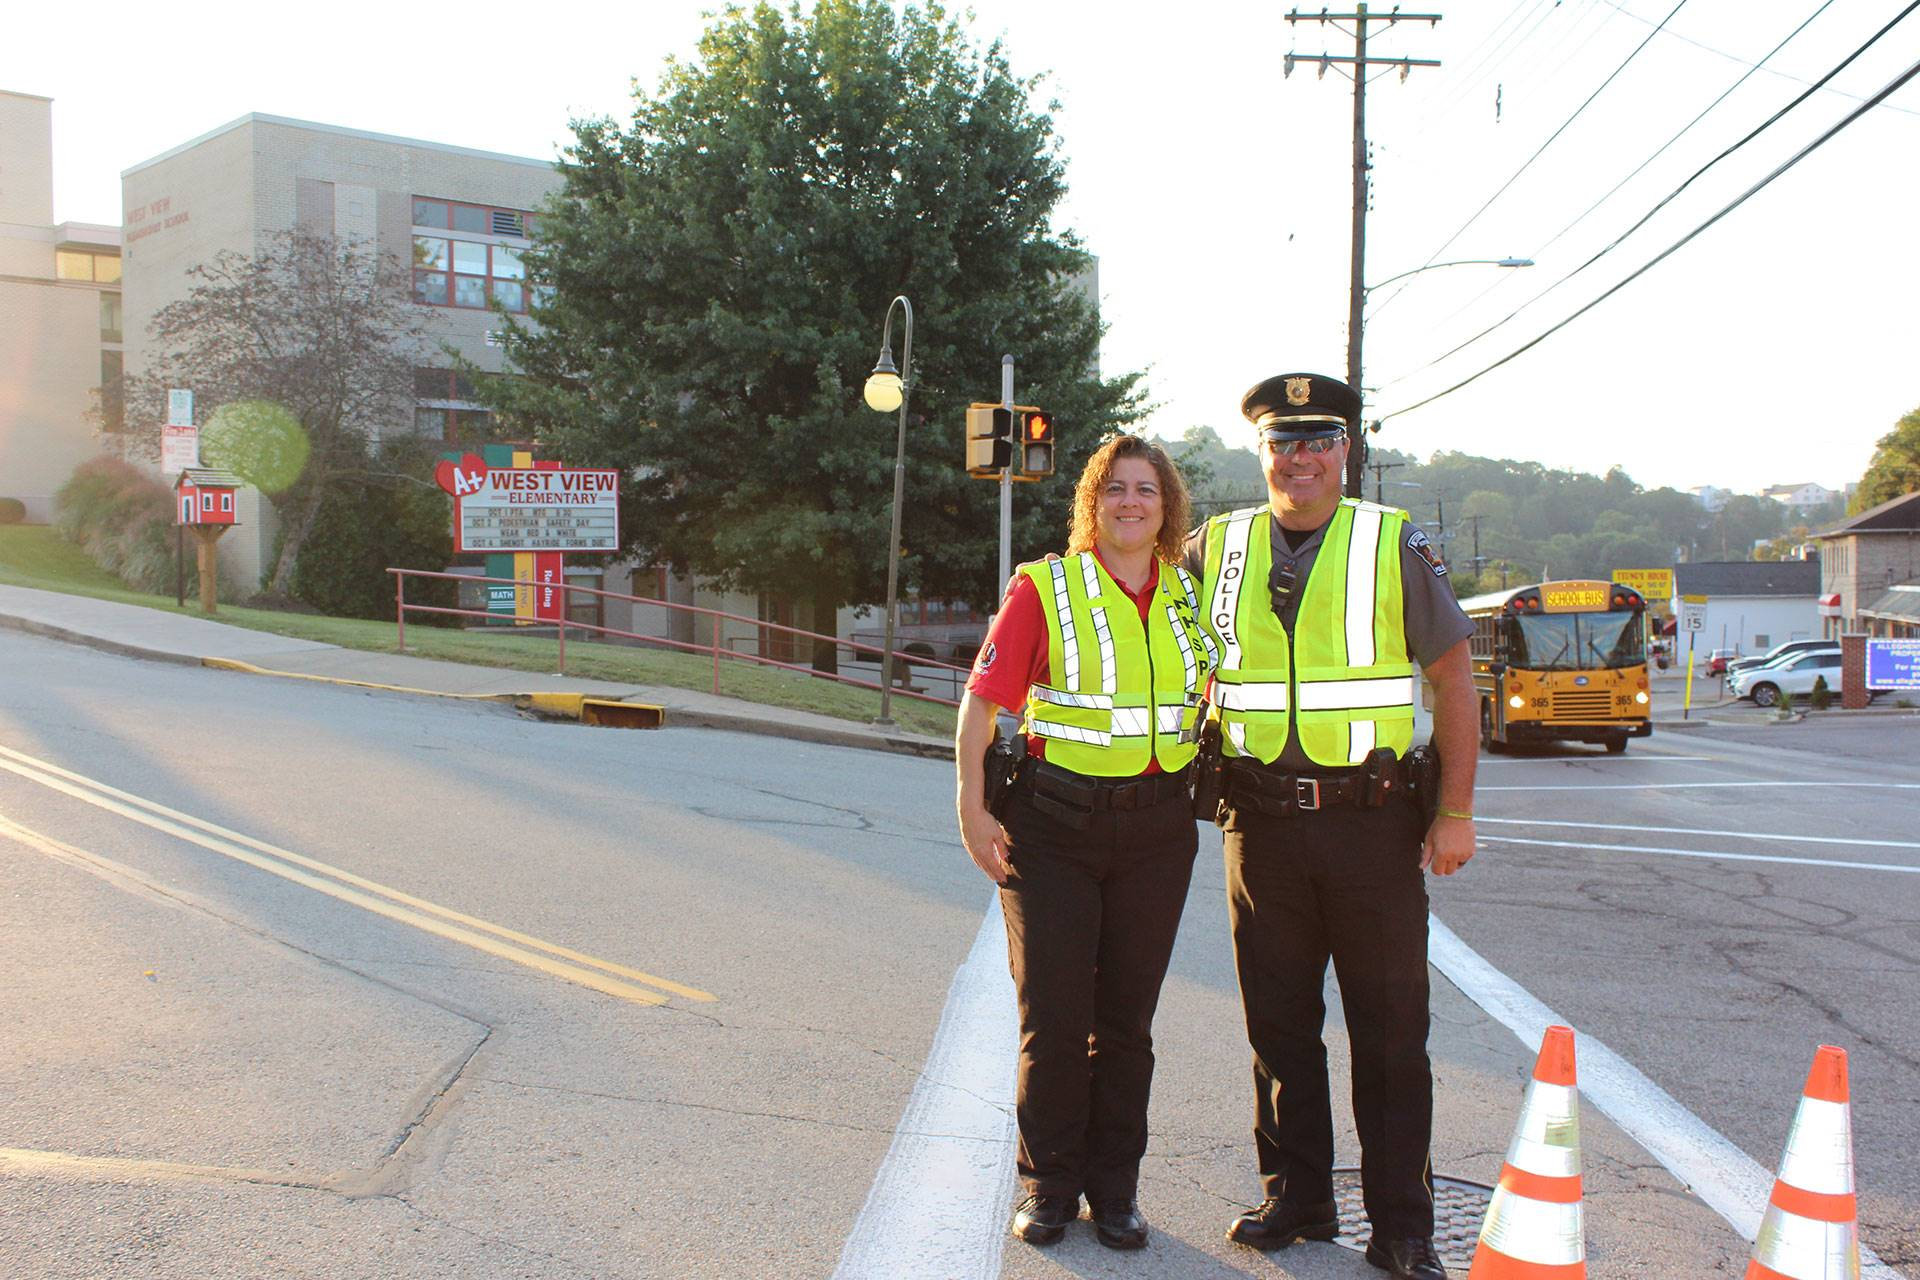 Police officers in front of West View Elementary School on International Walk to School Day